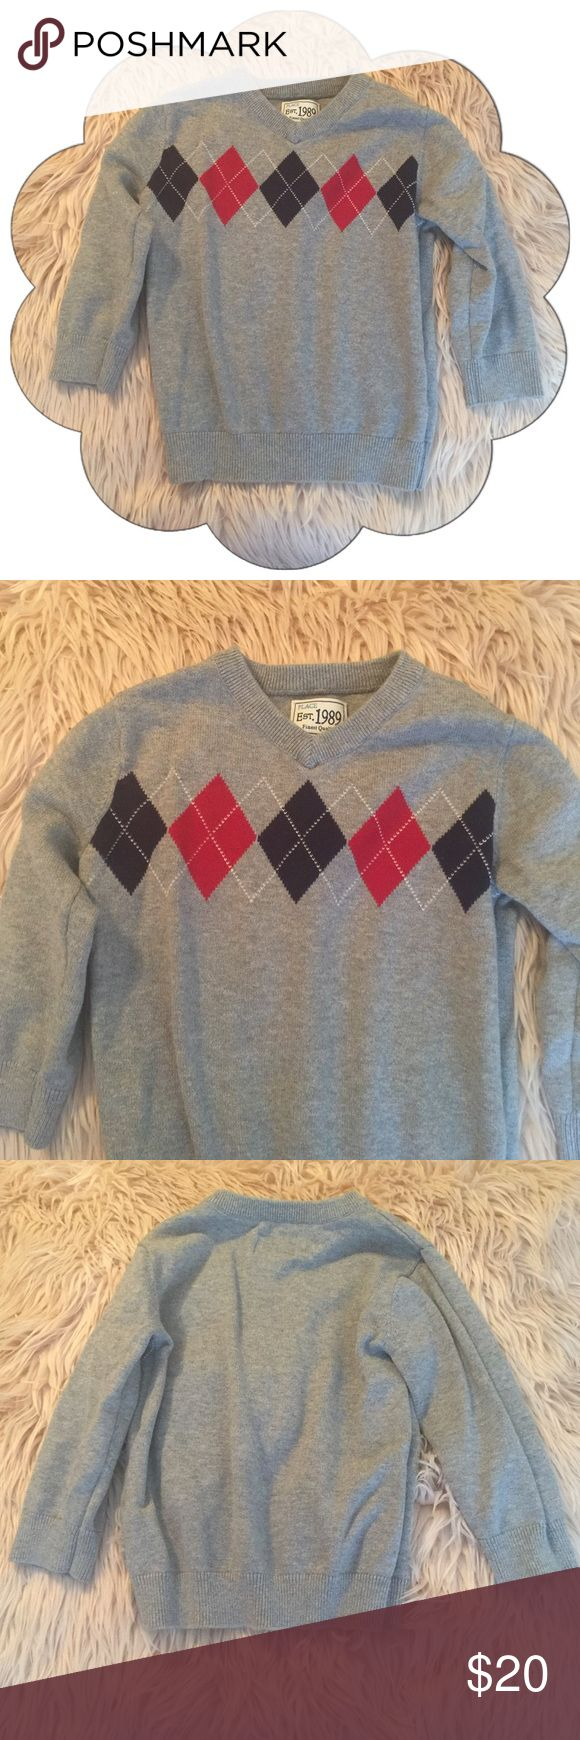 Children's Place Boys Argyle Sweater Excellent Condition : No tears or stains : Gray/Red/Navy Blue Children's Place Shirts & Tops Sweaters